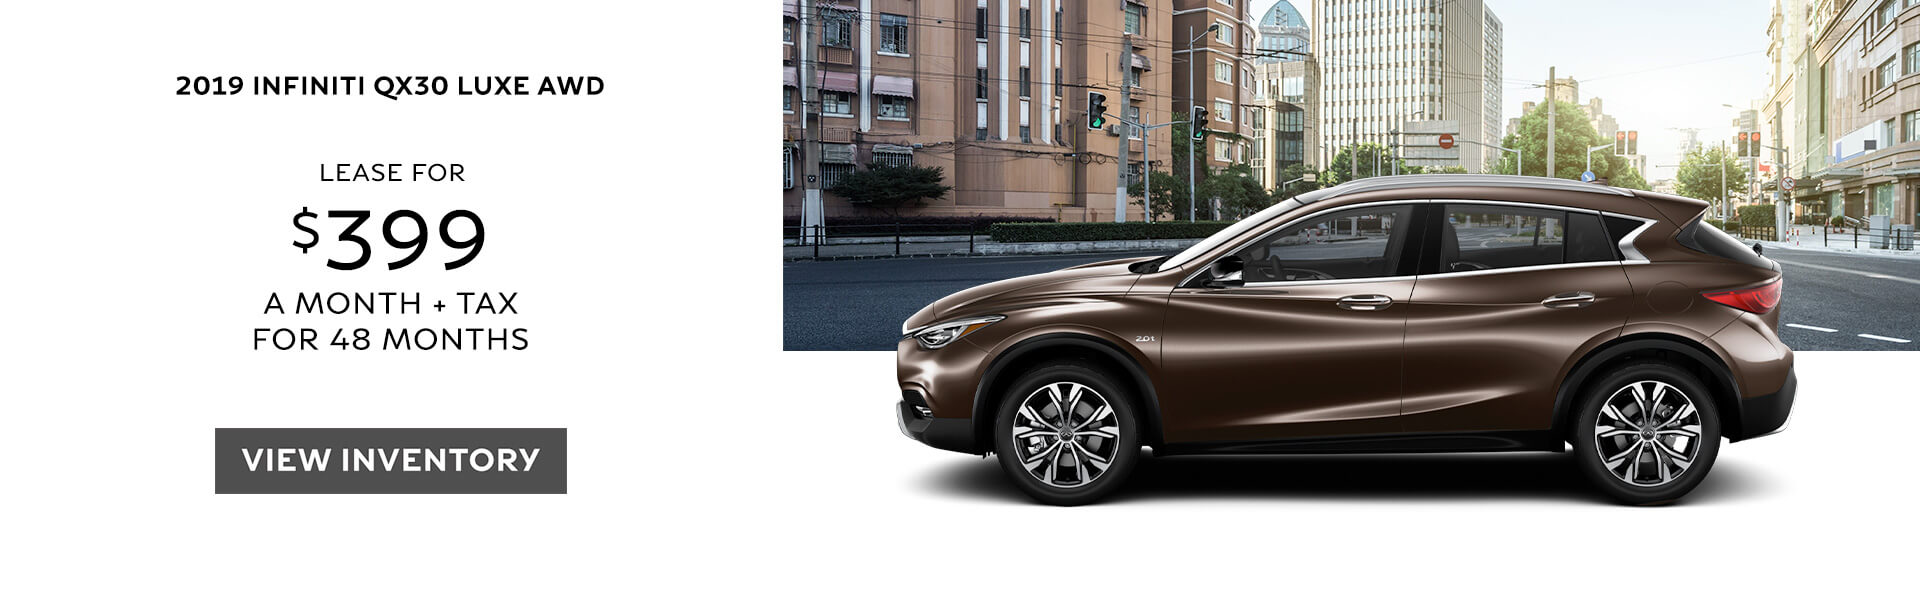 2019 QX30 - Lease for $399